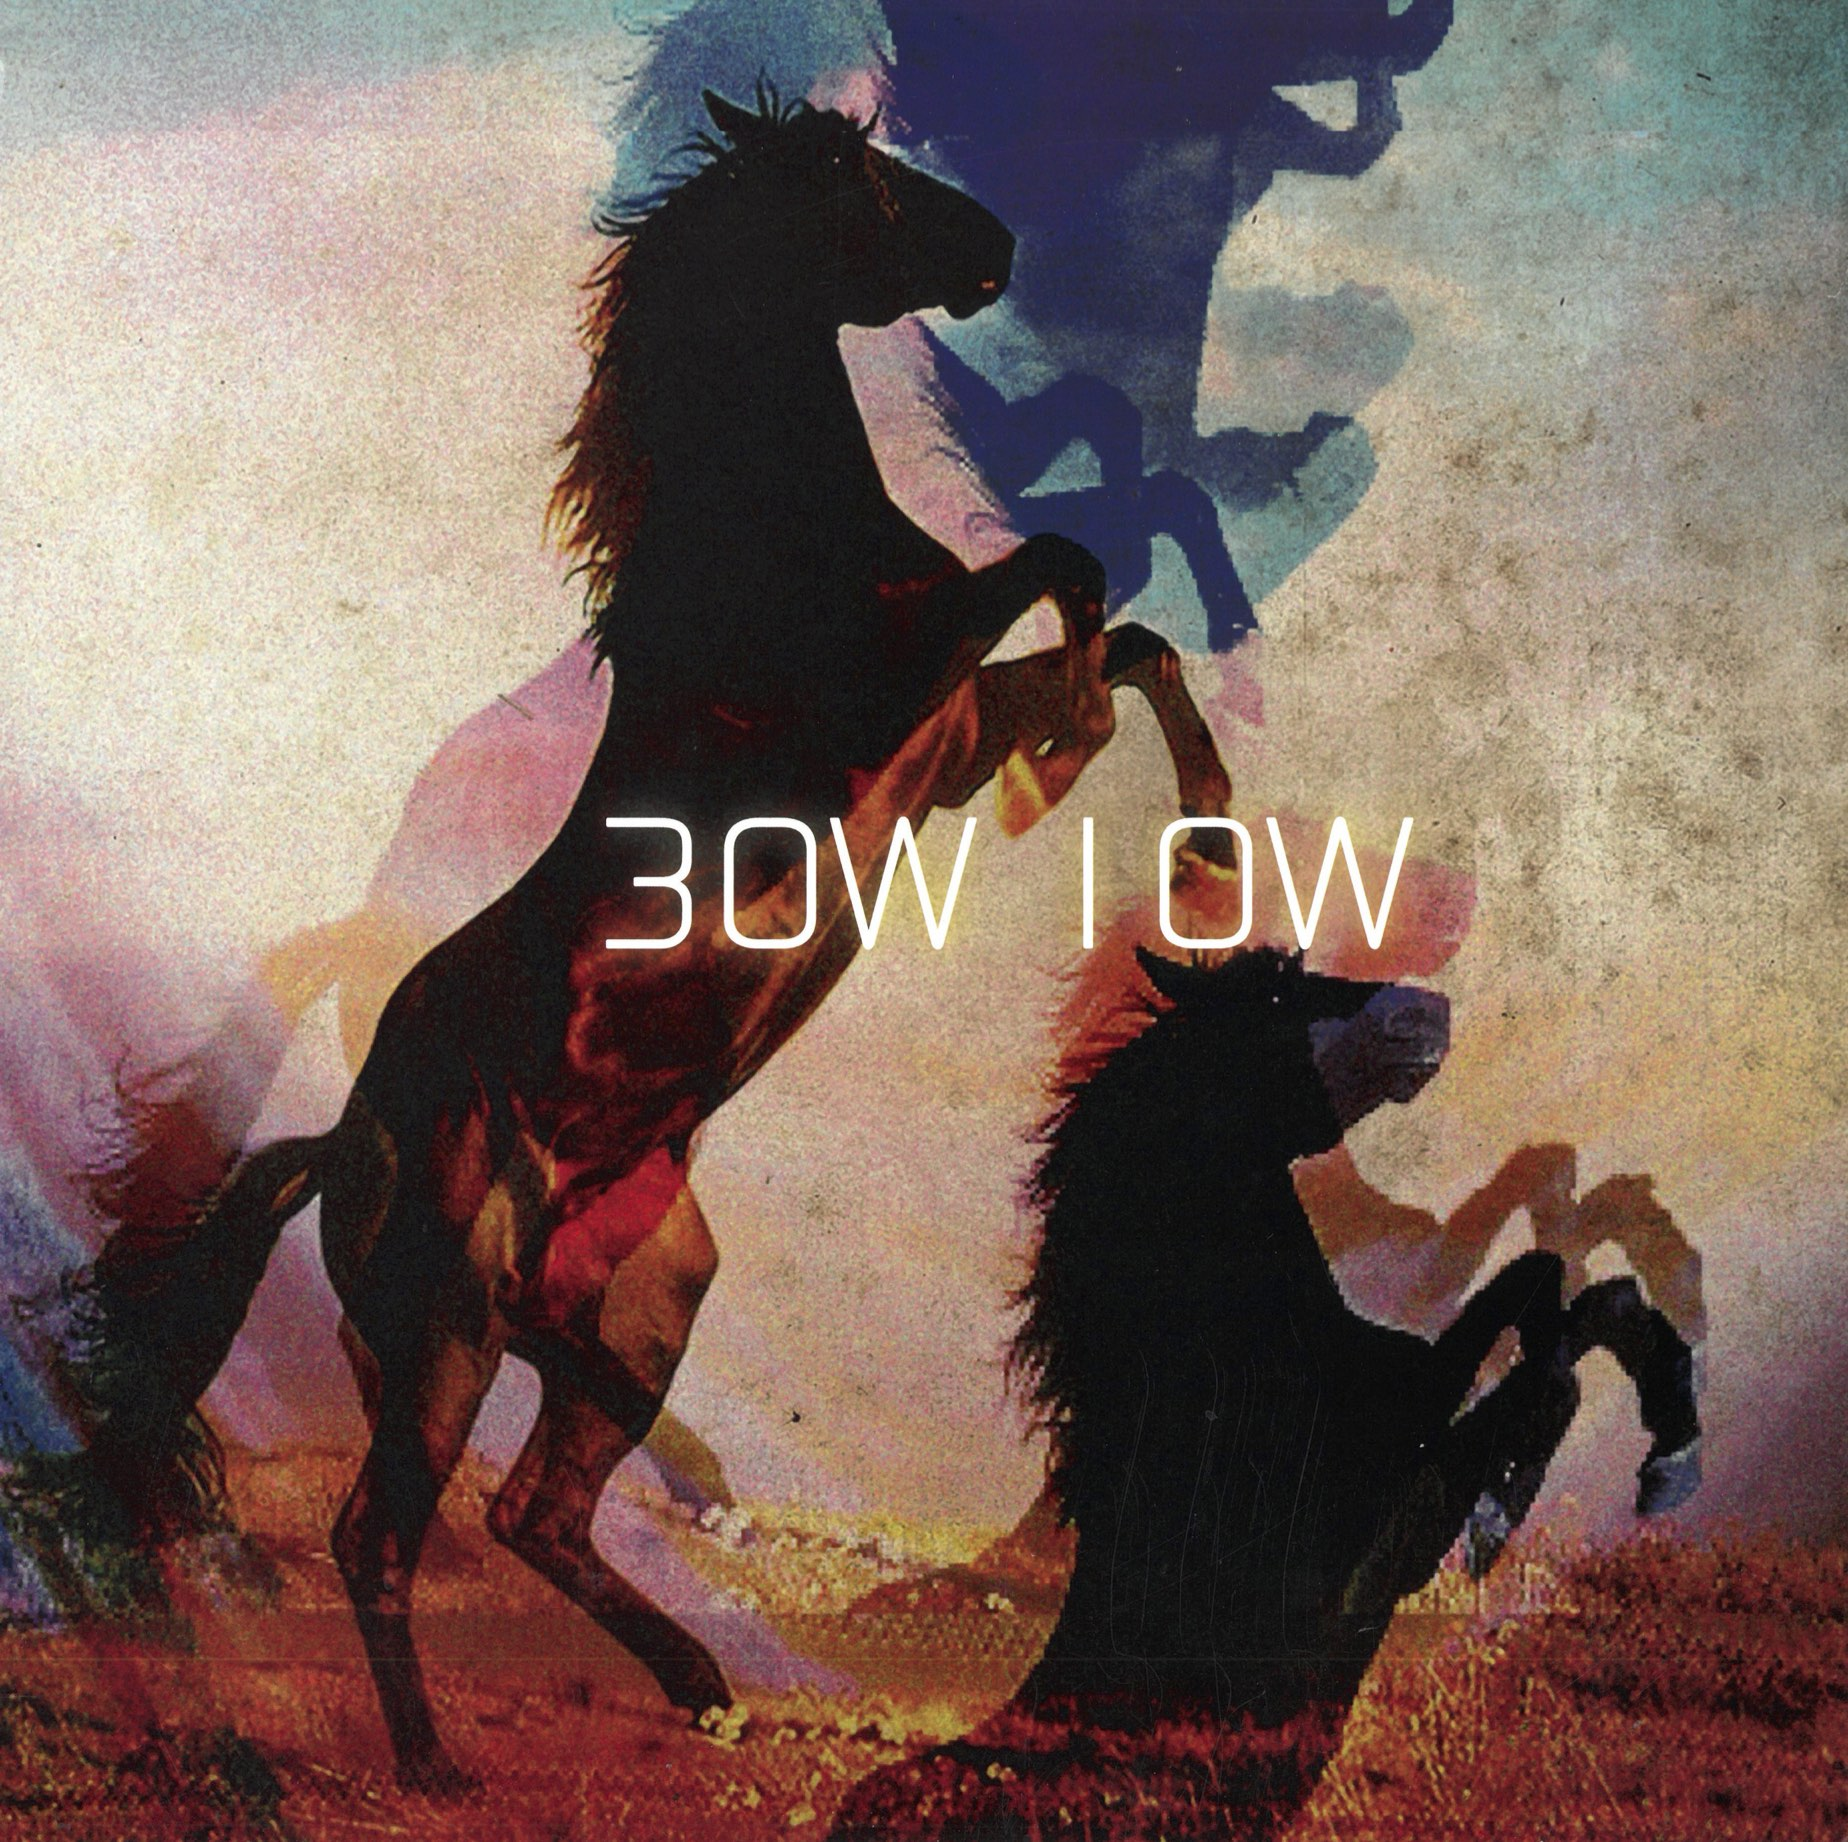 2012 - Bow Low